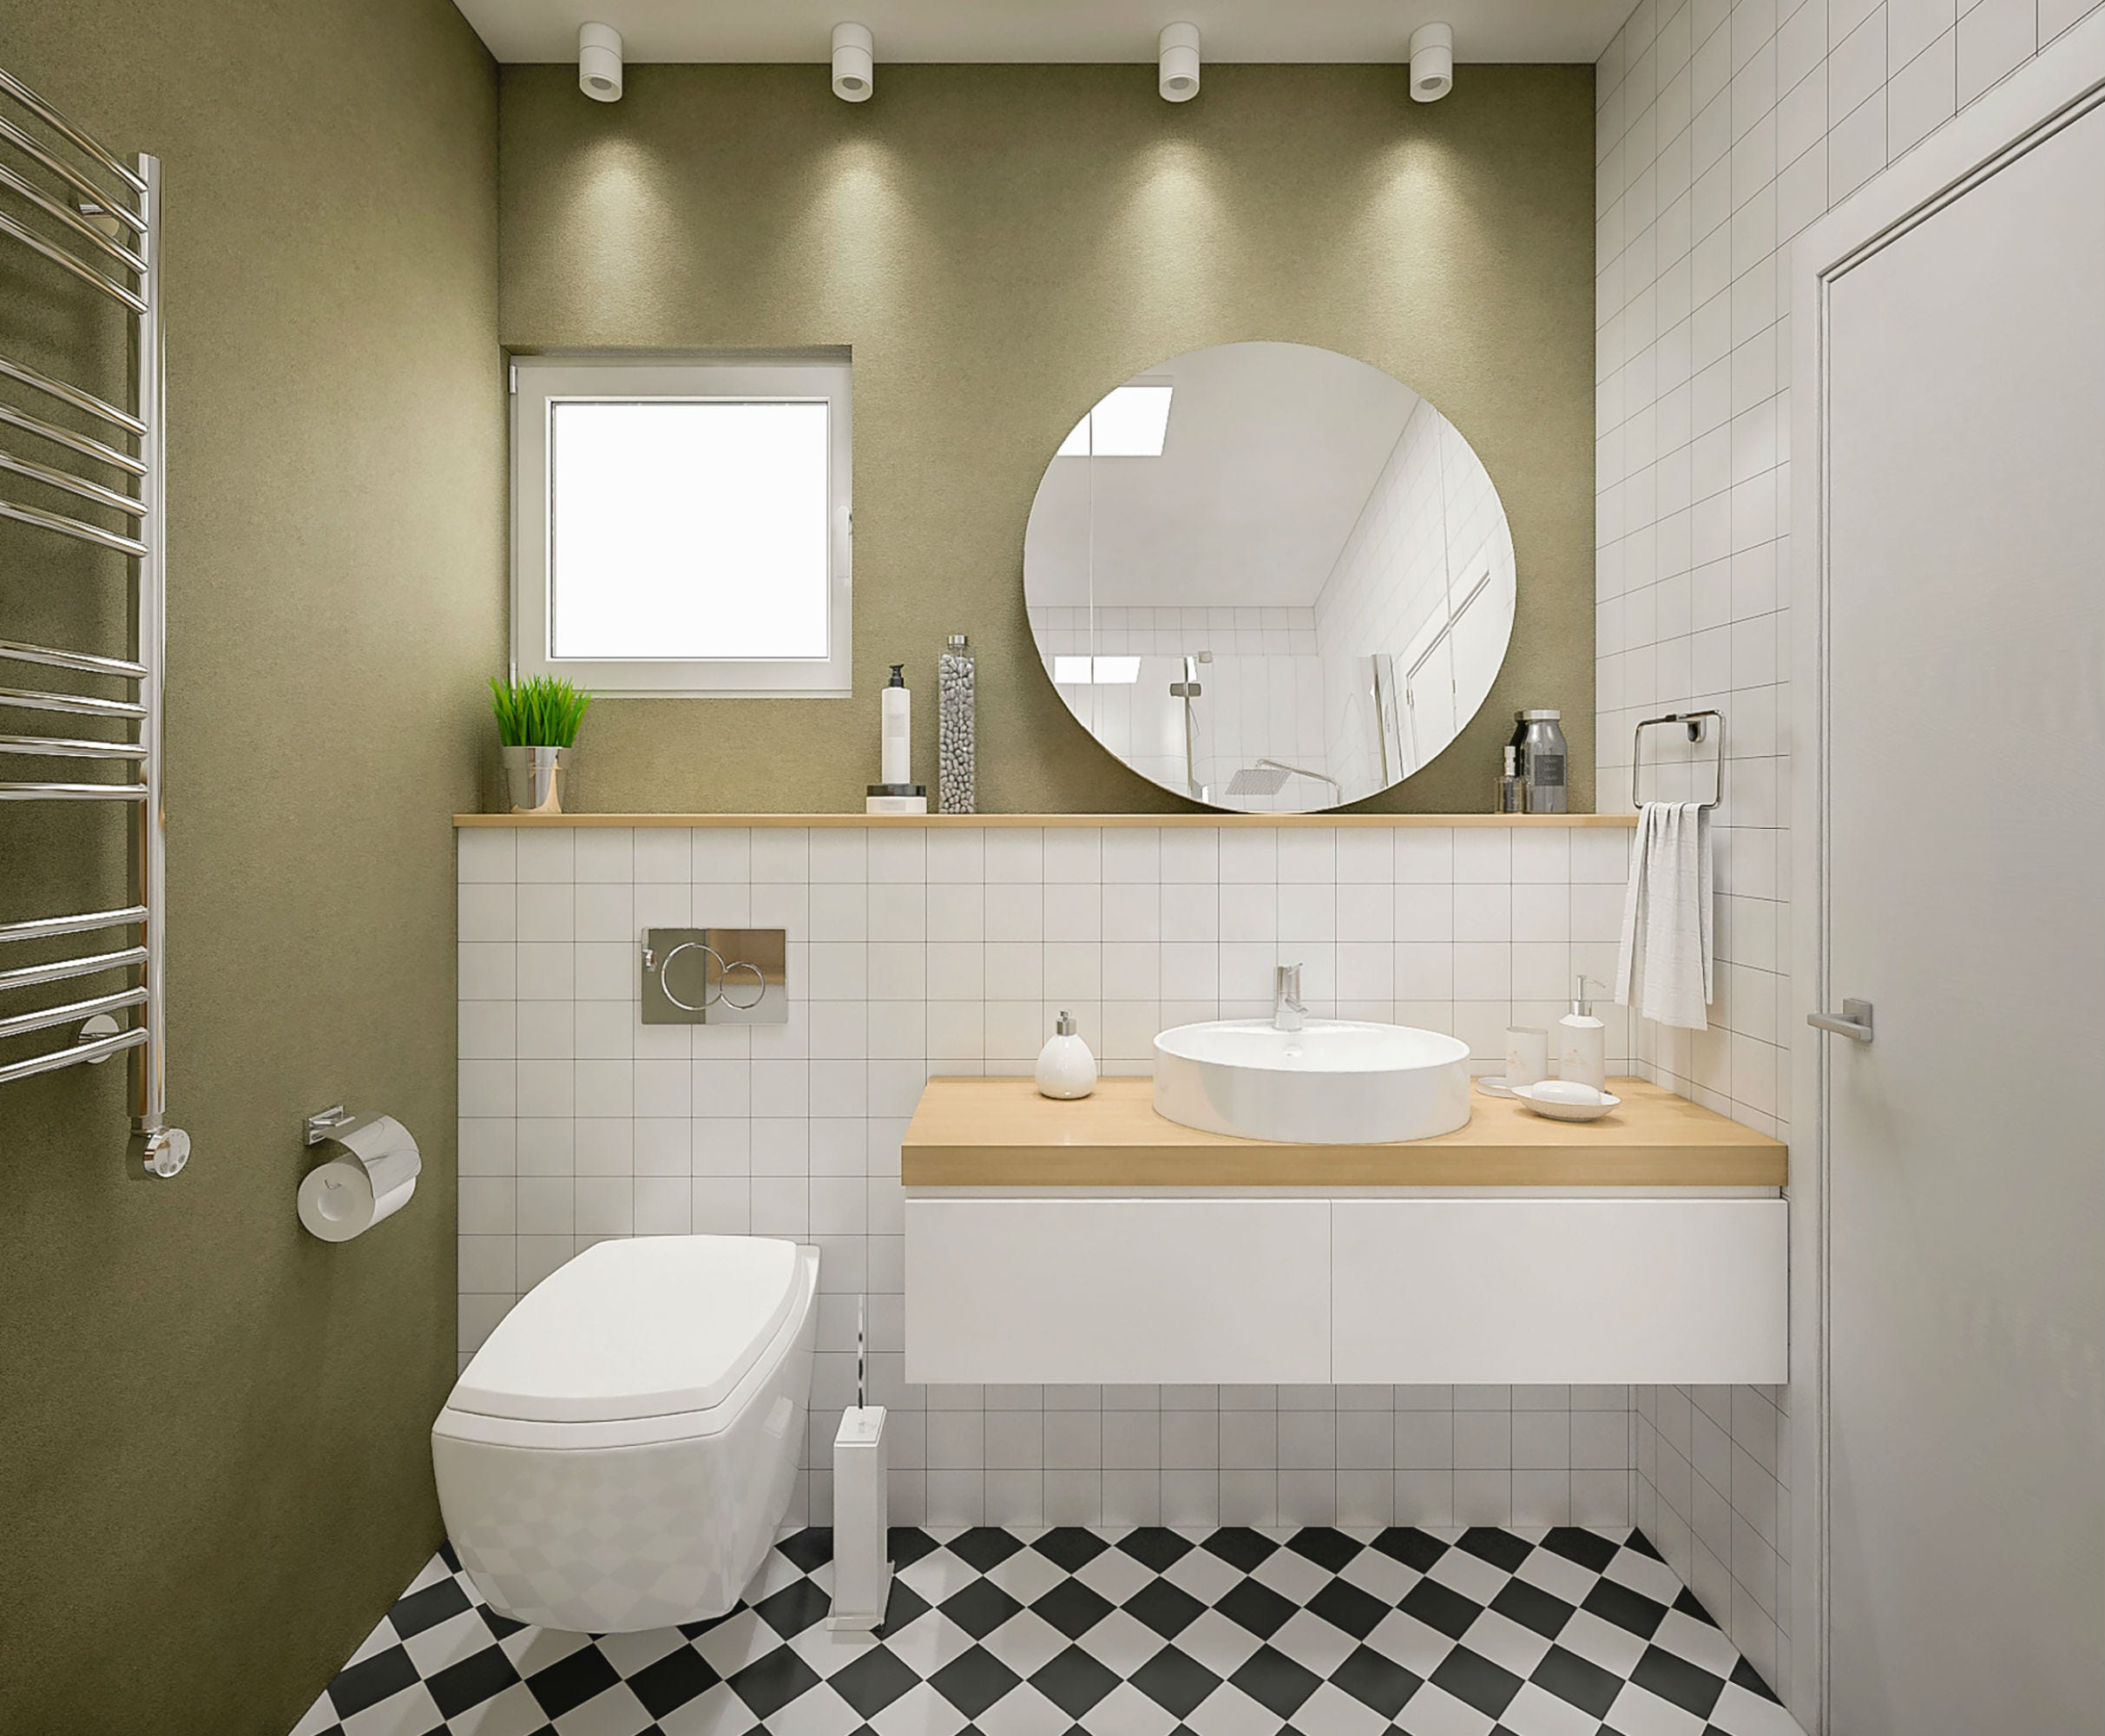 8 Genius Ideas For A Small Bathroom From Pinterest